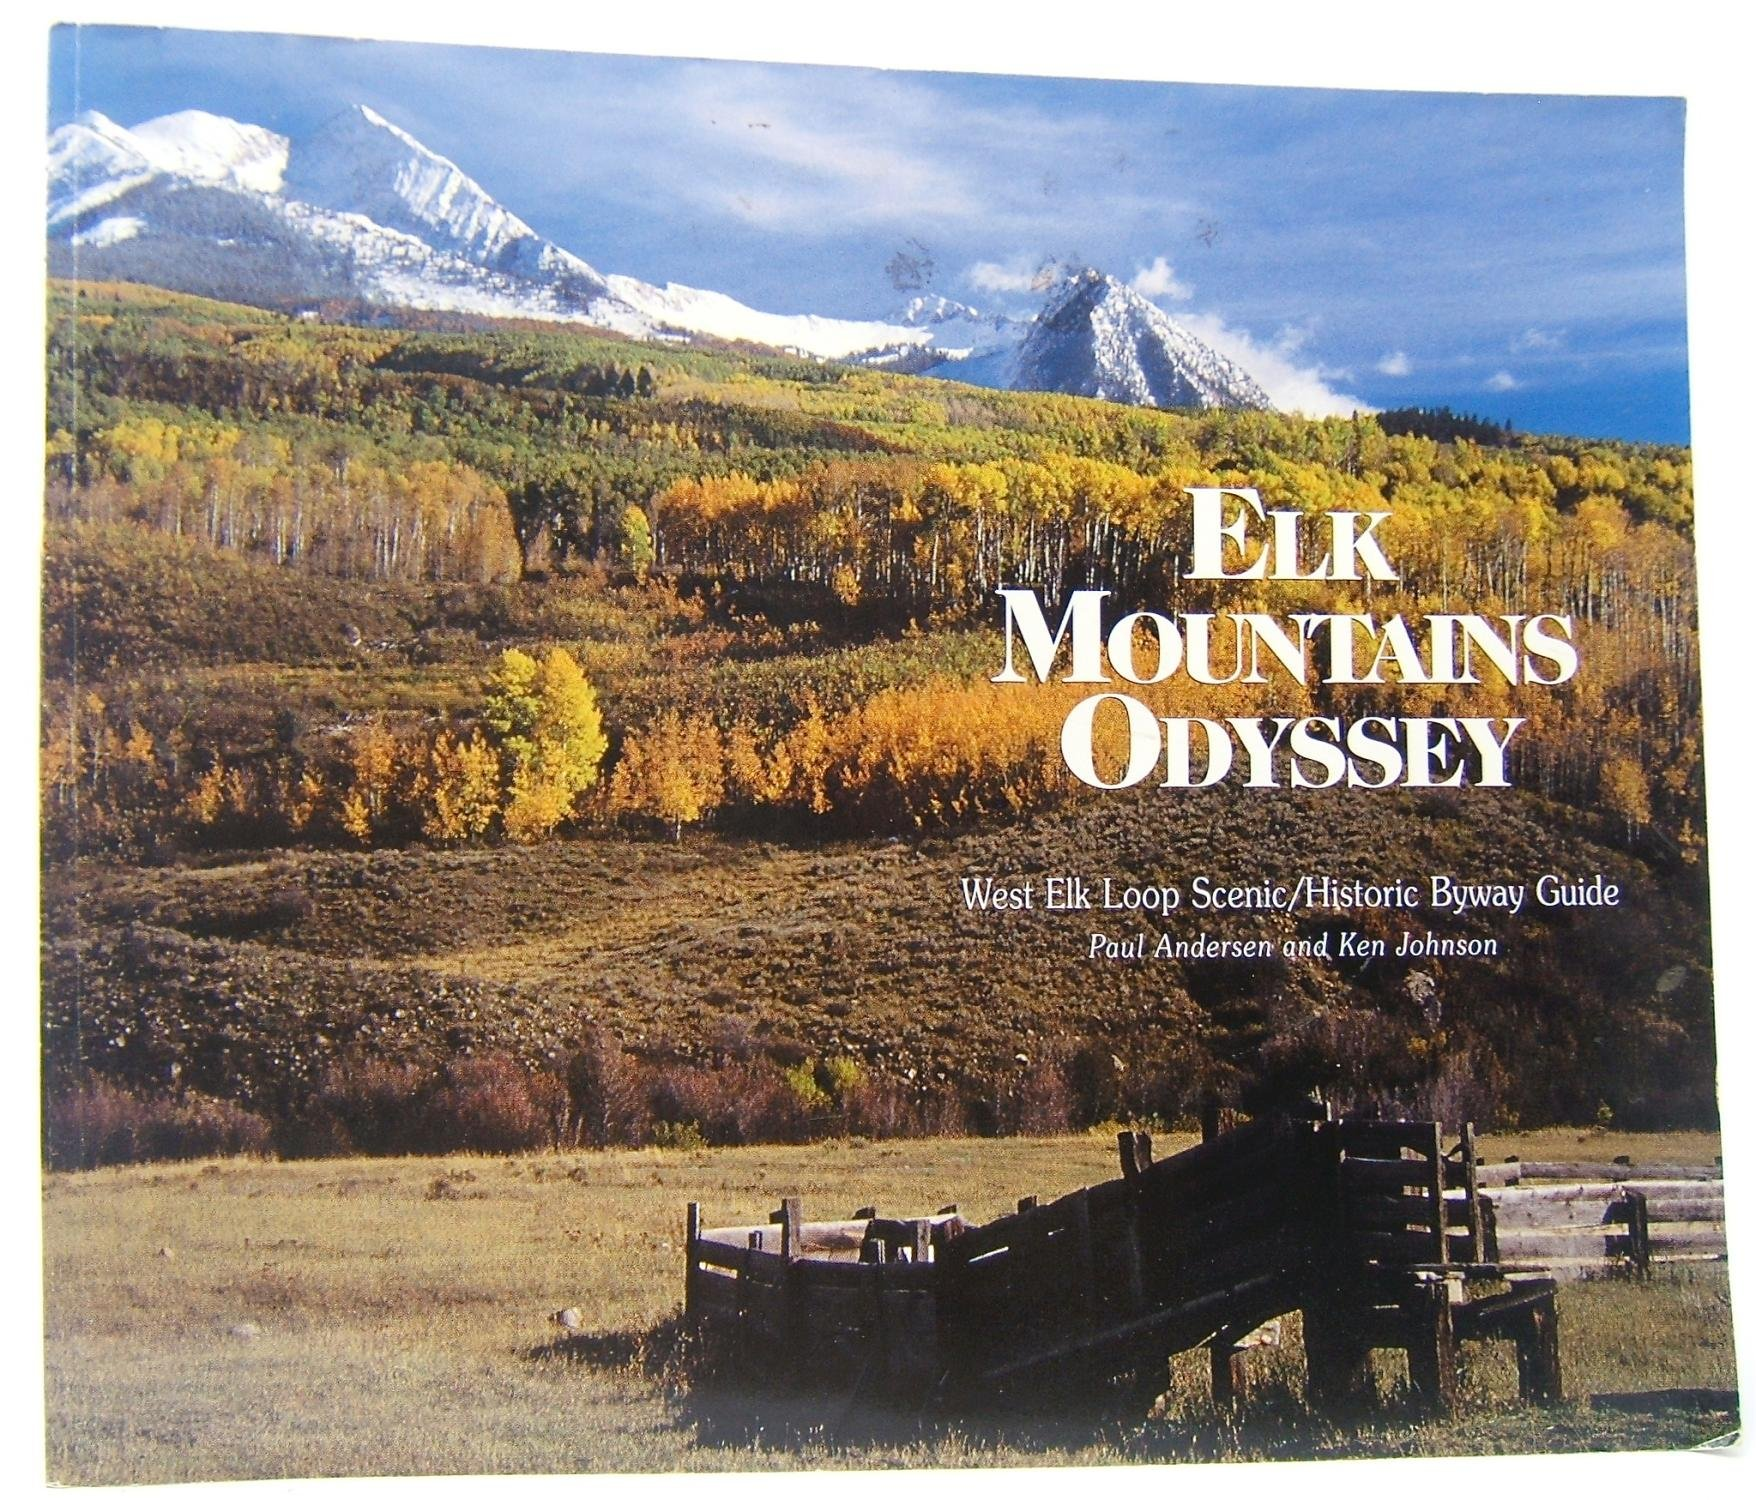 elk mountains odyssey the west elk loop scenic and historic byway